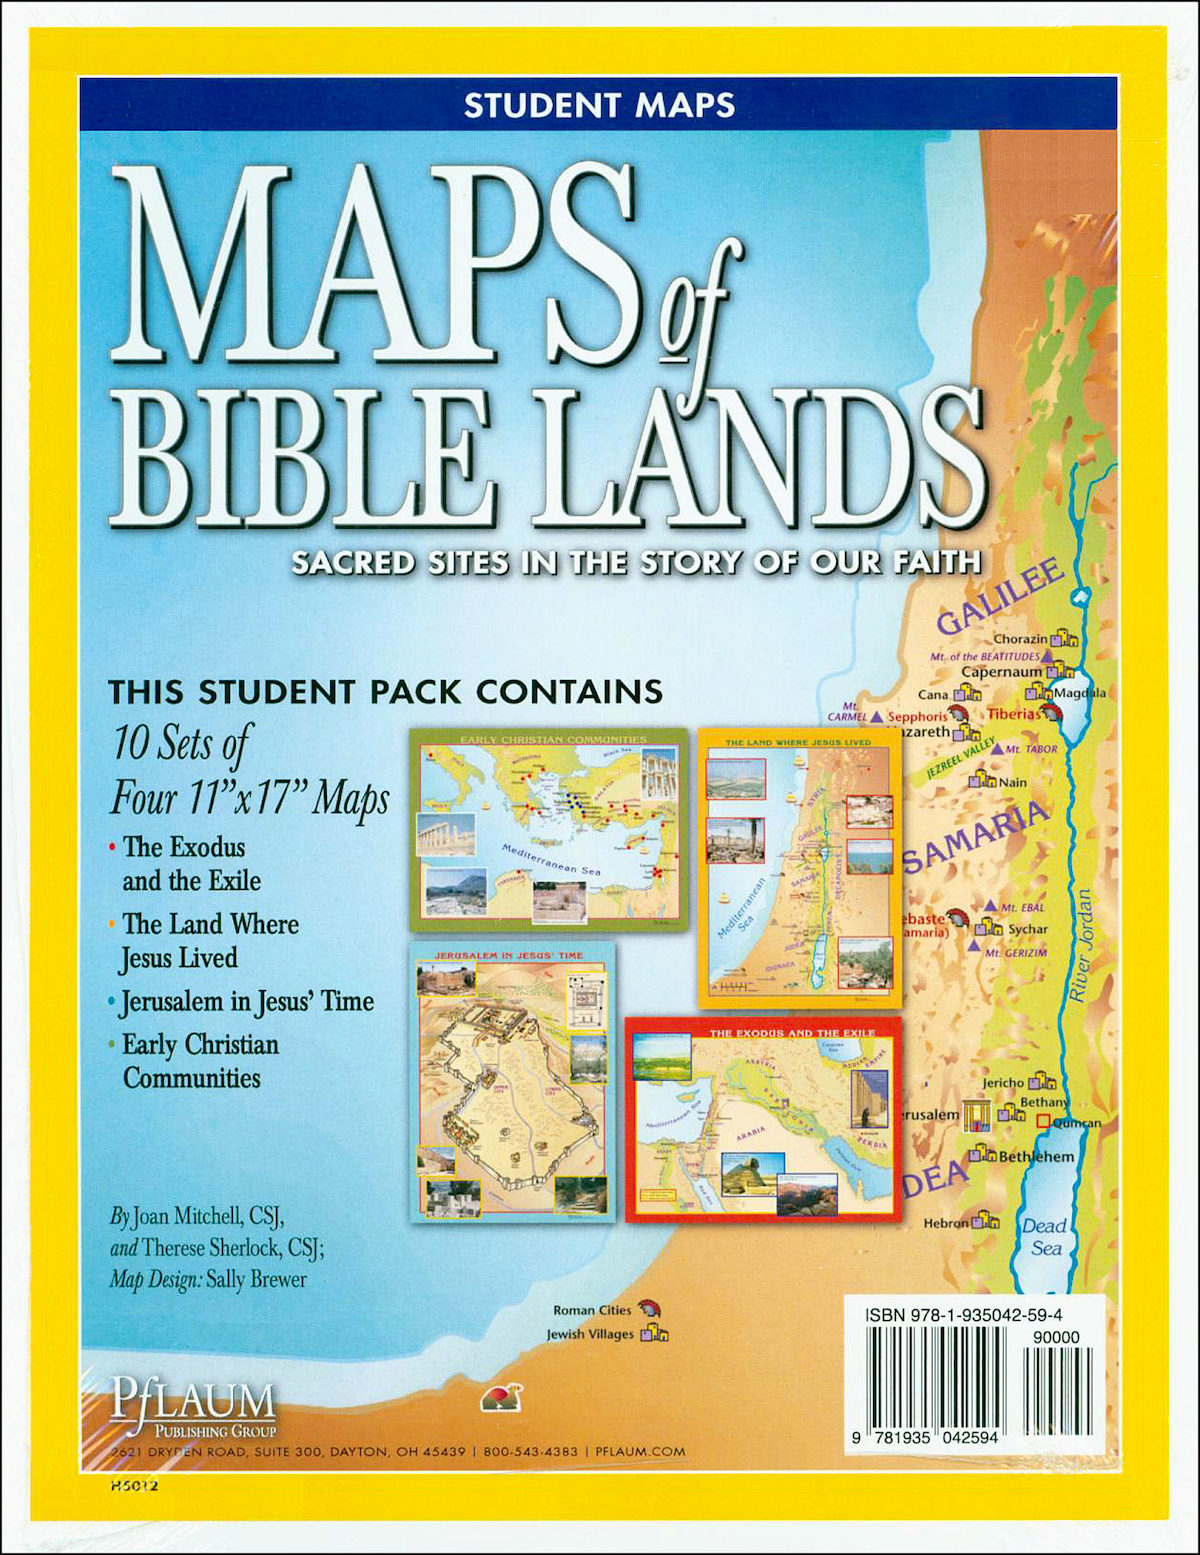 Maps of Bible Lands, Student Sets Map Bible on bible concordance, topographic maps, love maps, google maps, assyrian and babylonian empire maps, bible study, new testament maps, genesis maps, christian maps, teaching maps, israel maps, bible search, audio bible, bible prophecy, gospel of mark maps, land god promised abraham maps, christianity maps, niv bible, bible pictures, paul's journeys maps, modern day biblical maps, printable maps, blue letter bible, bible charts, ancient maps, revelation maps, bible gateway, cia world factbook maps, atheism maps, cobbly nob rentals maps, bible online, bible commentary,